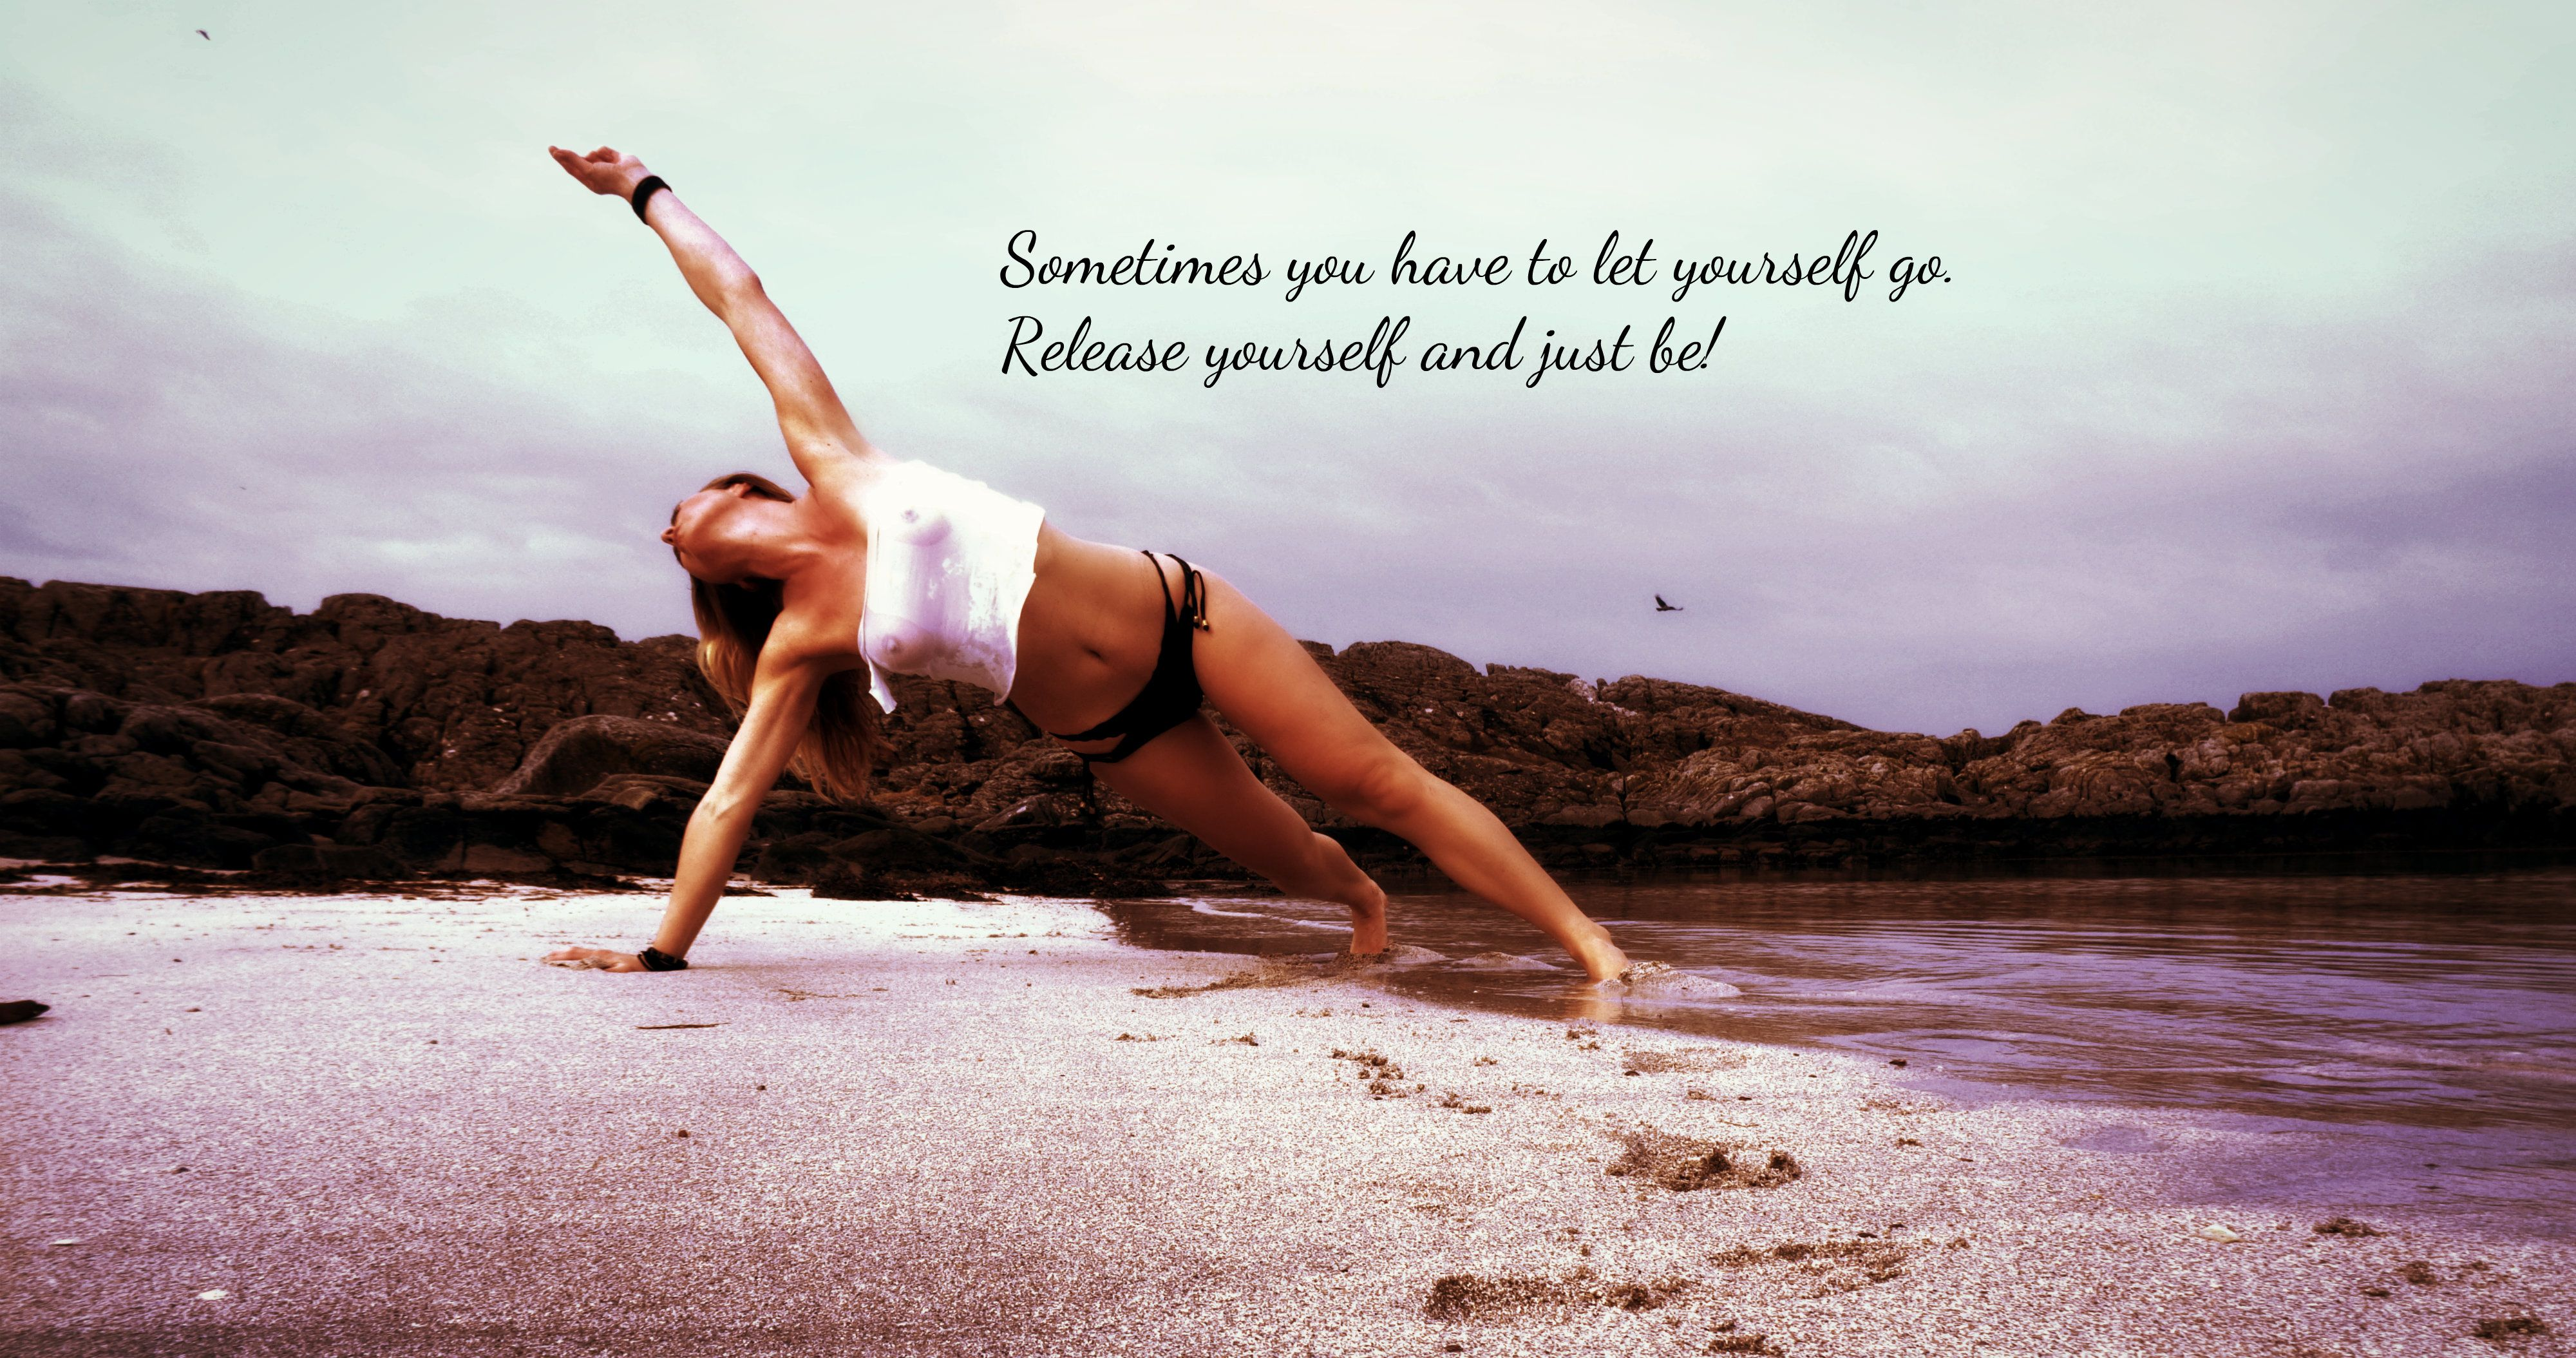 Sometimes you have to let yourself go. Release yourself and just be! #Love #Life #MyBeachYoga